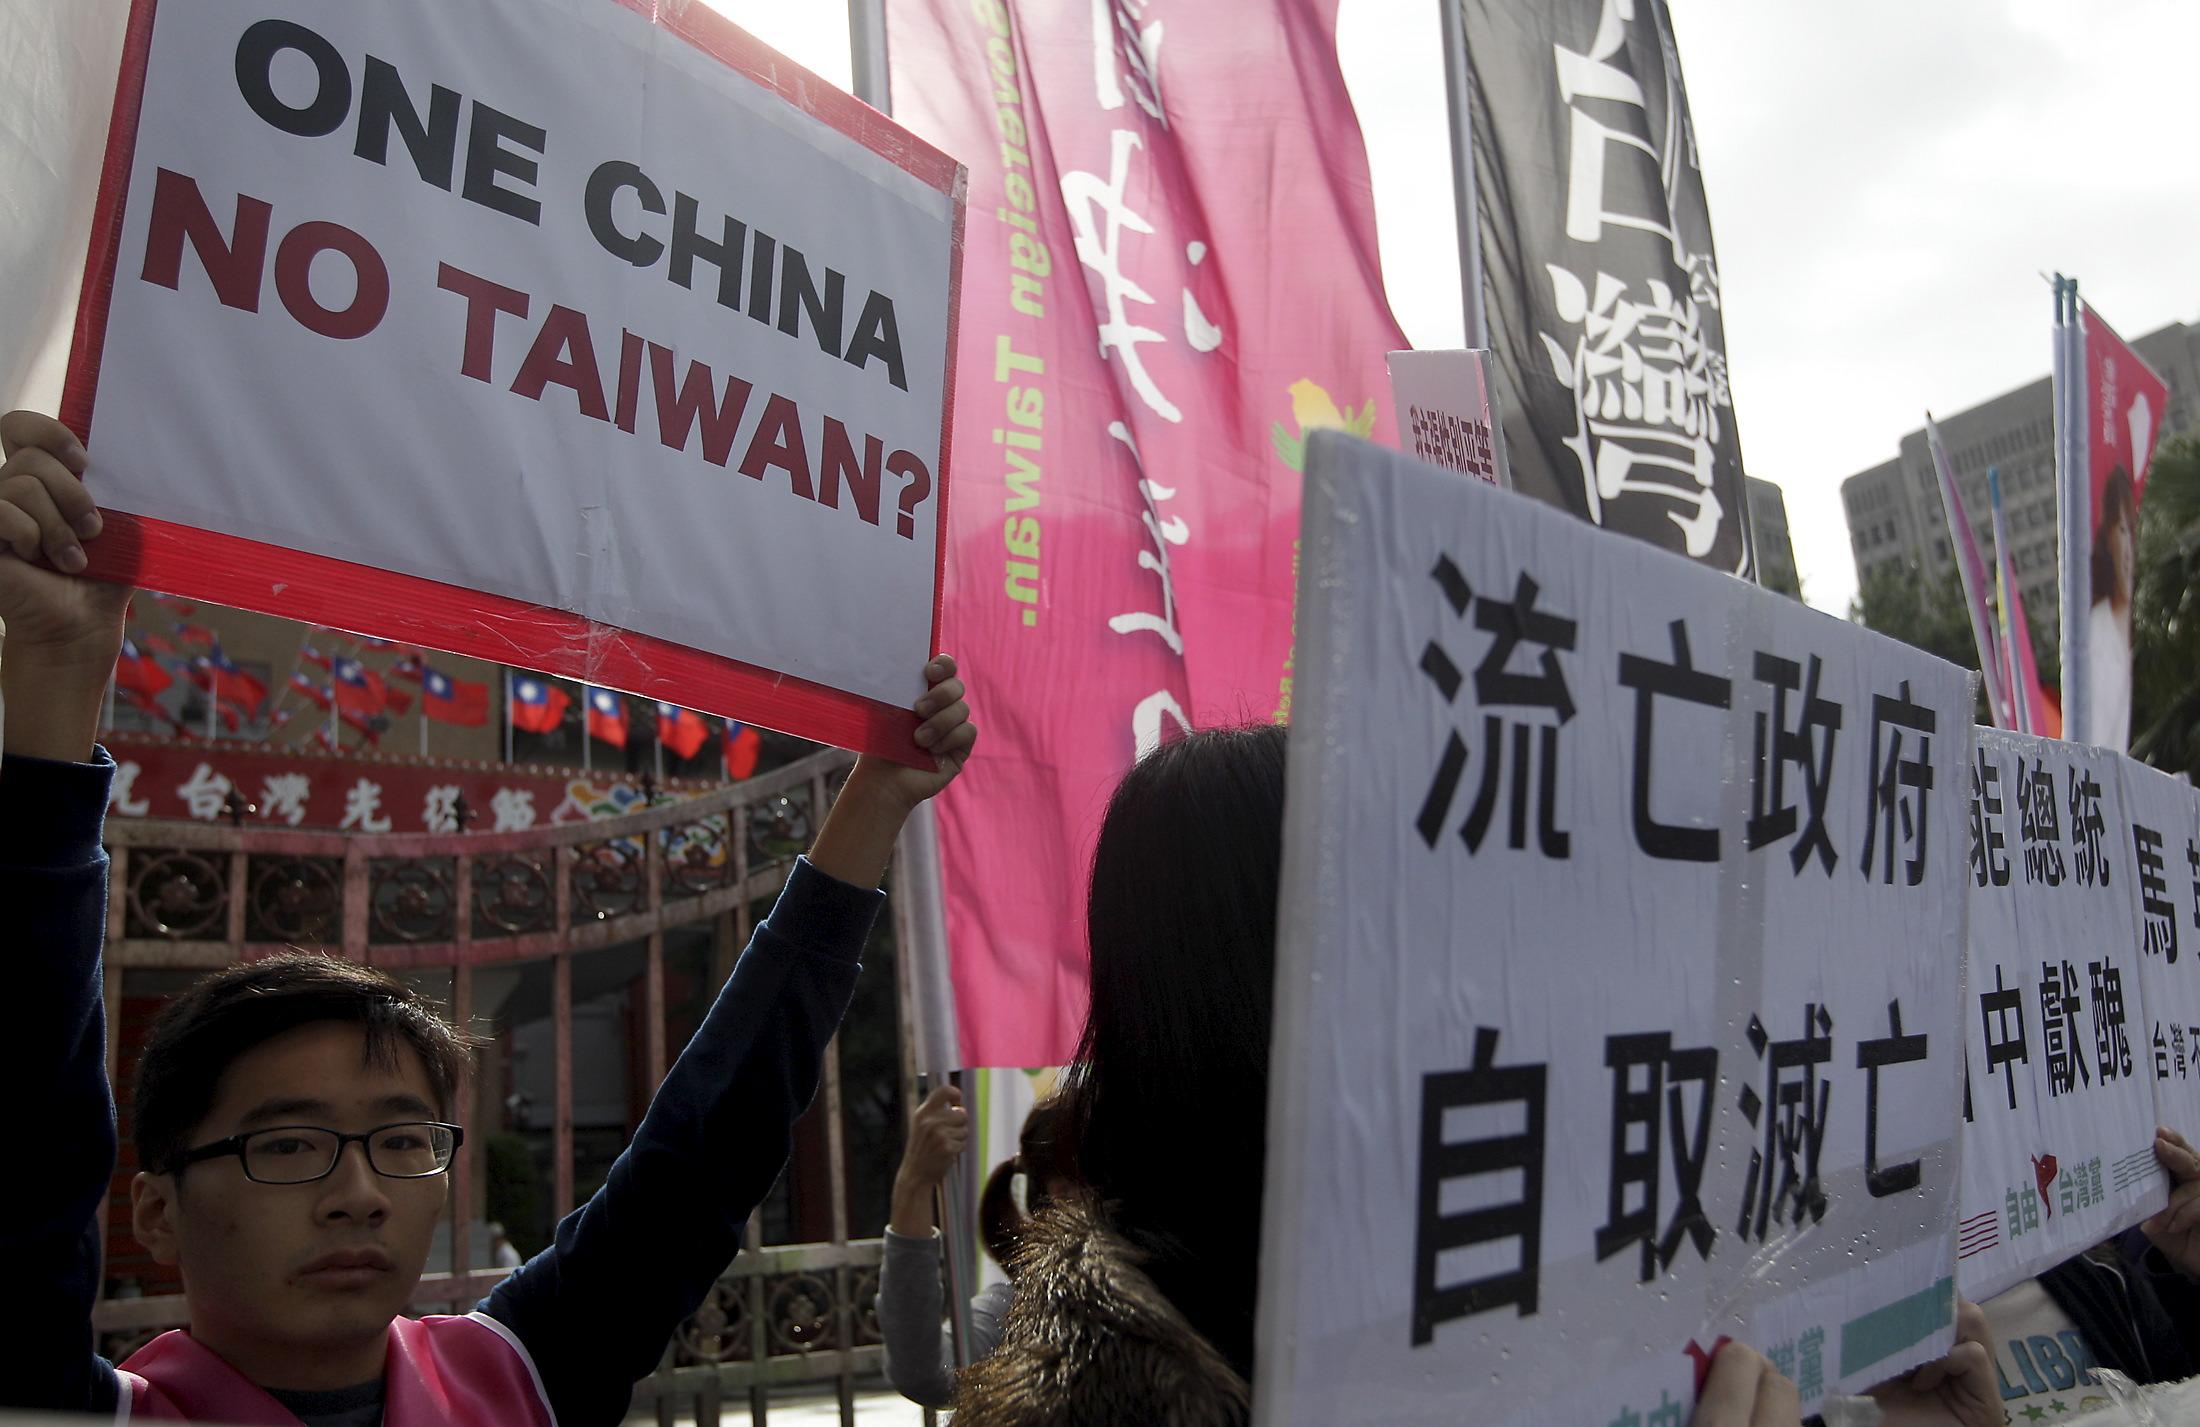 Protests_ChinaTaiwanMeet_Nov42015